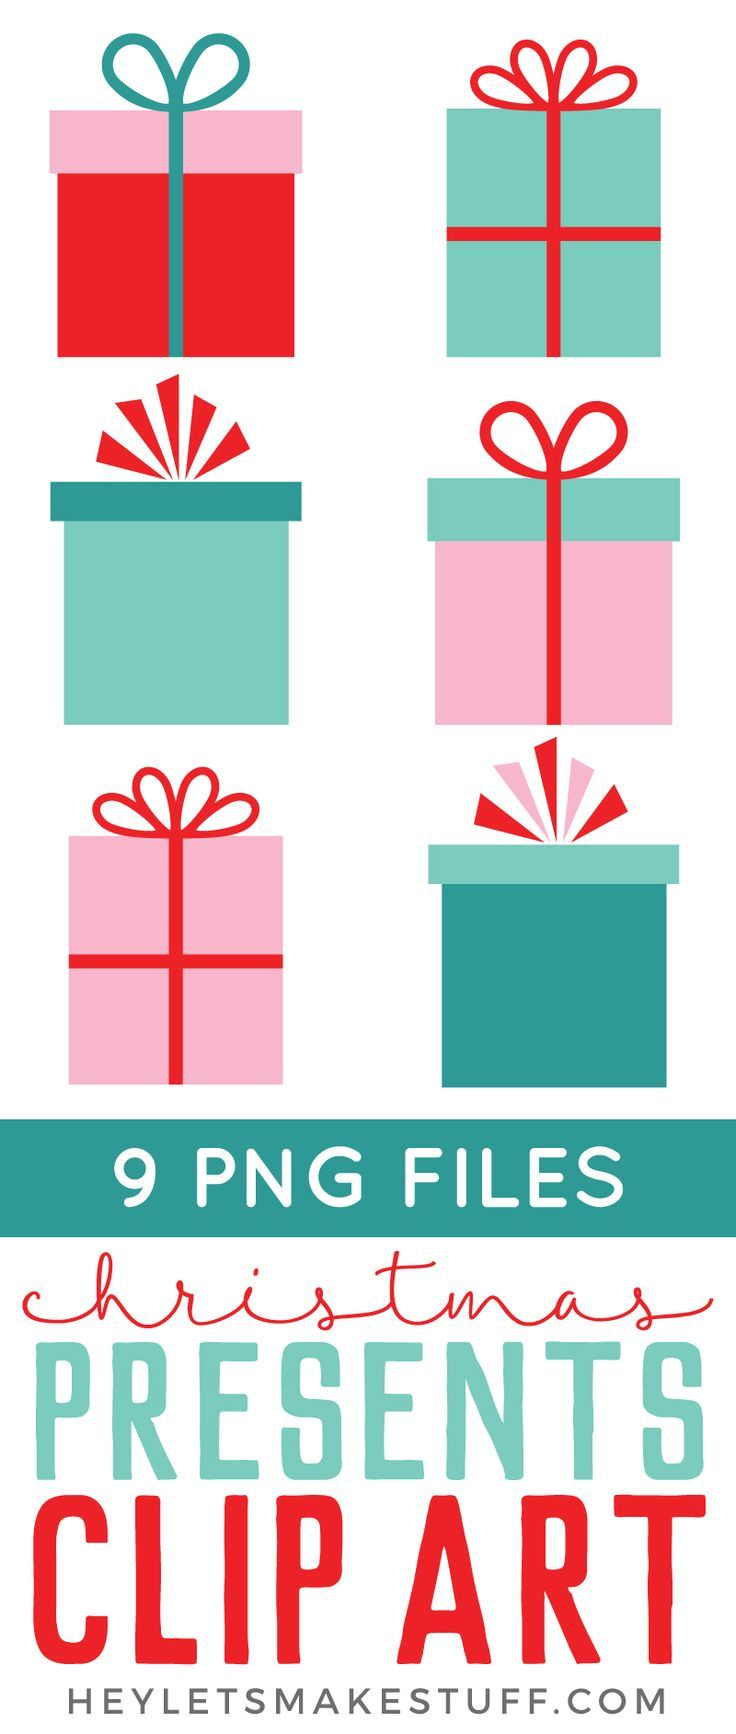 Adorable Christmas gifts clip art is perfect for all of your holiday projects! Use them on Christmas cards, gift tags, holiday party fliers, and more!